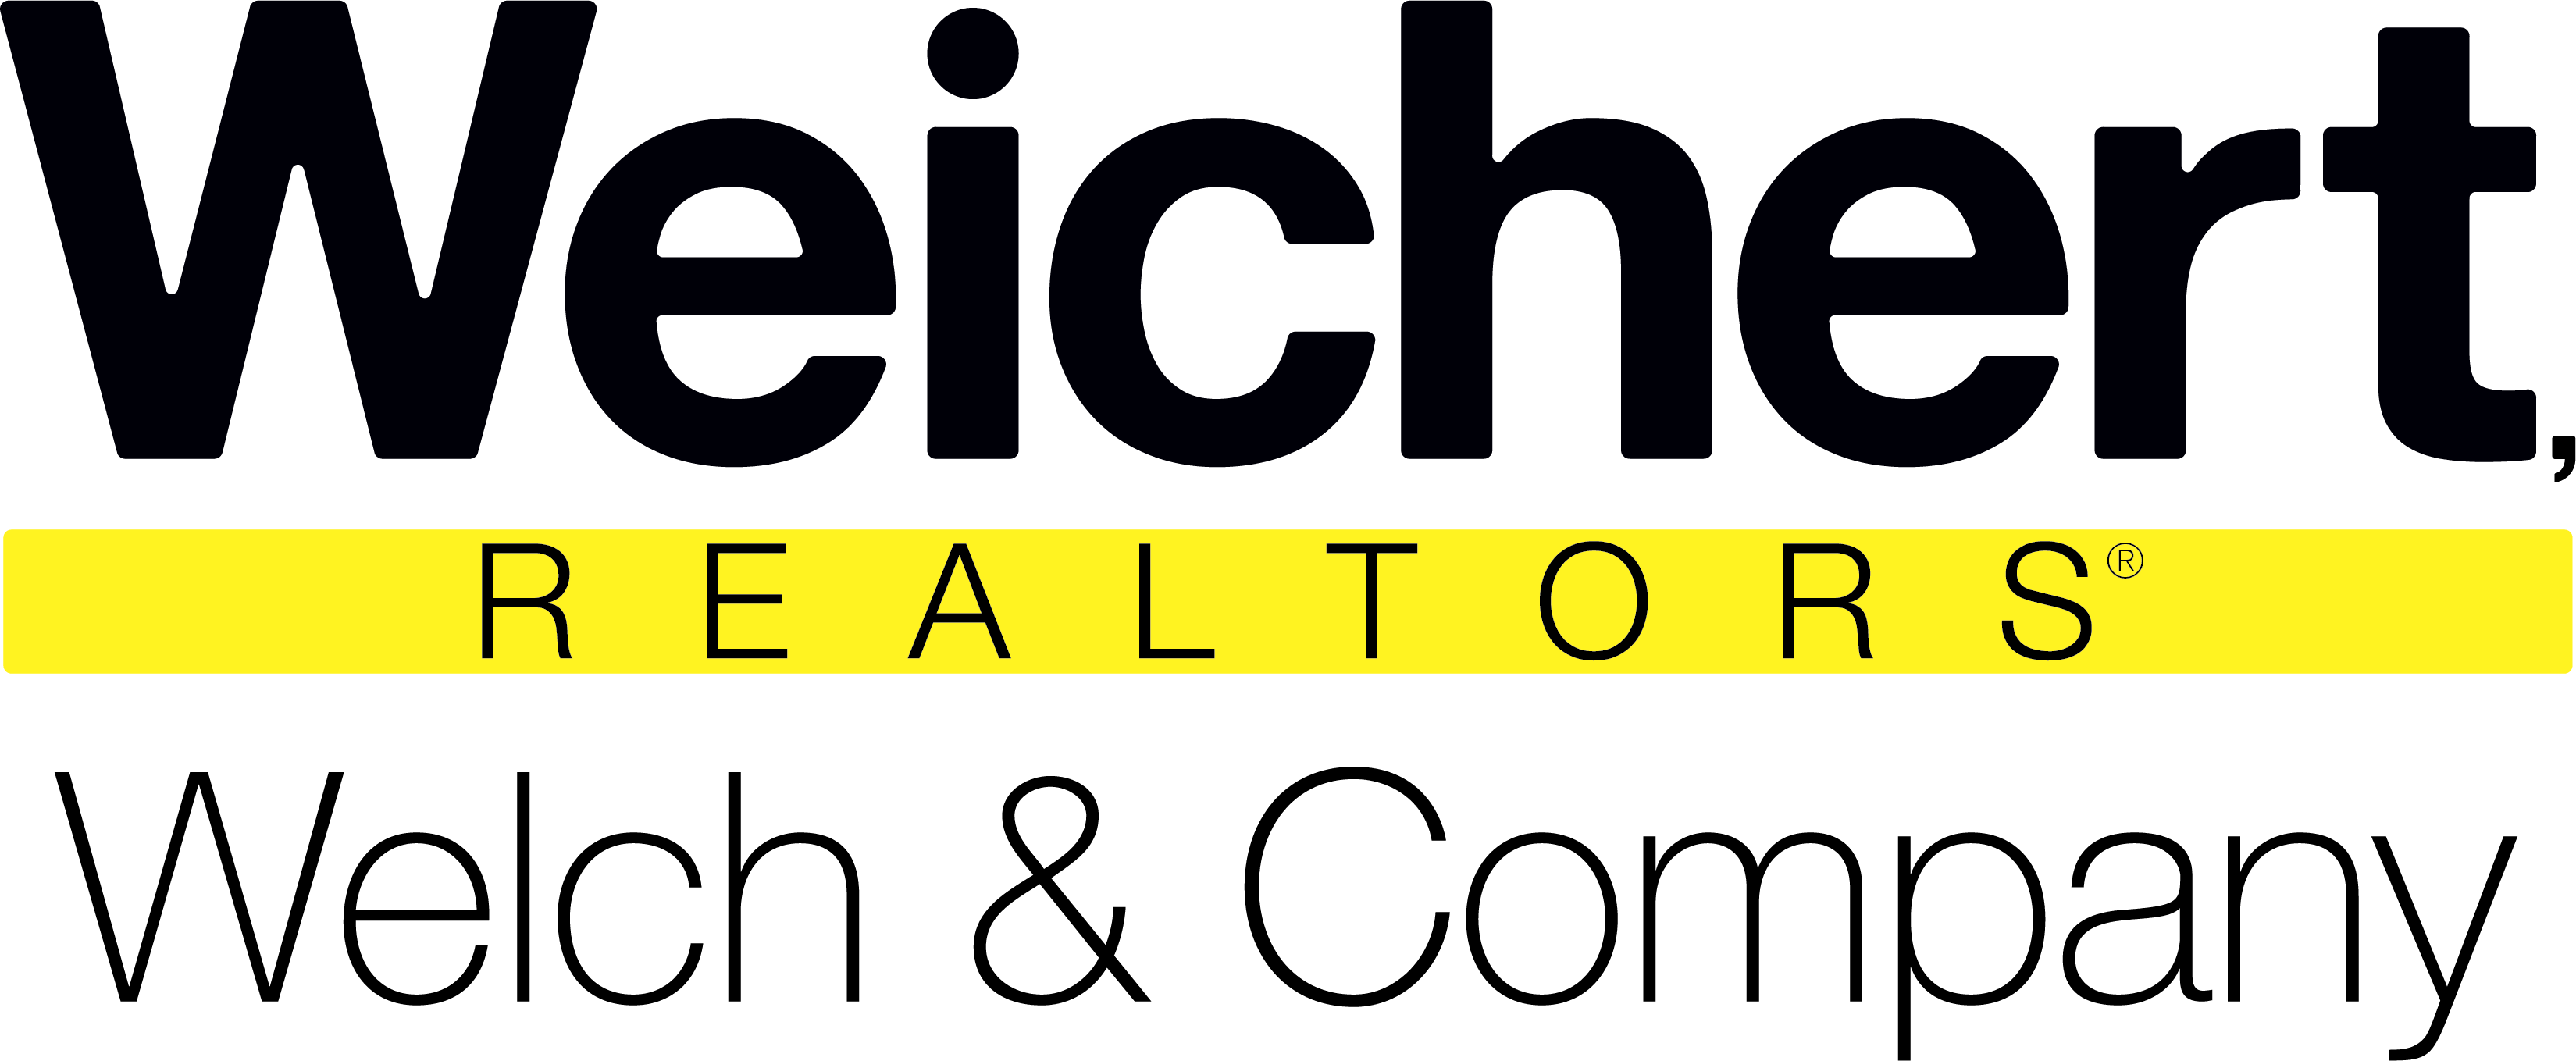 Weichert Realtors Welch and Company Logo